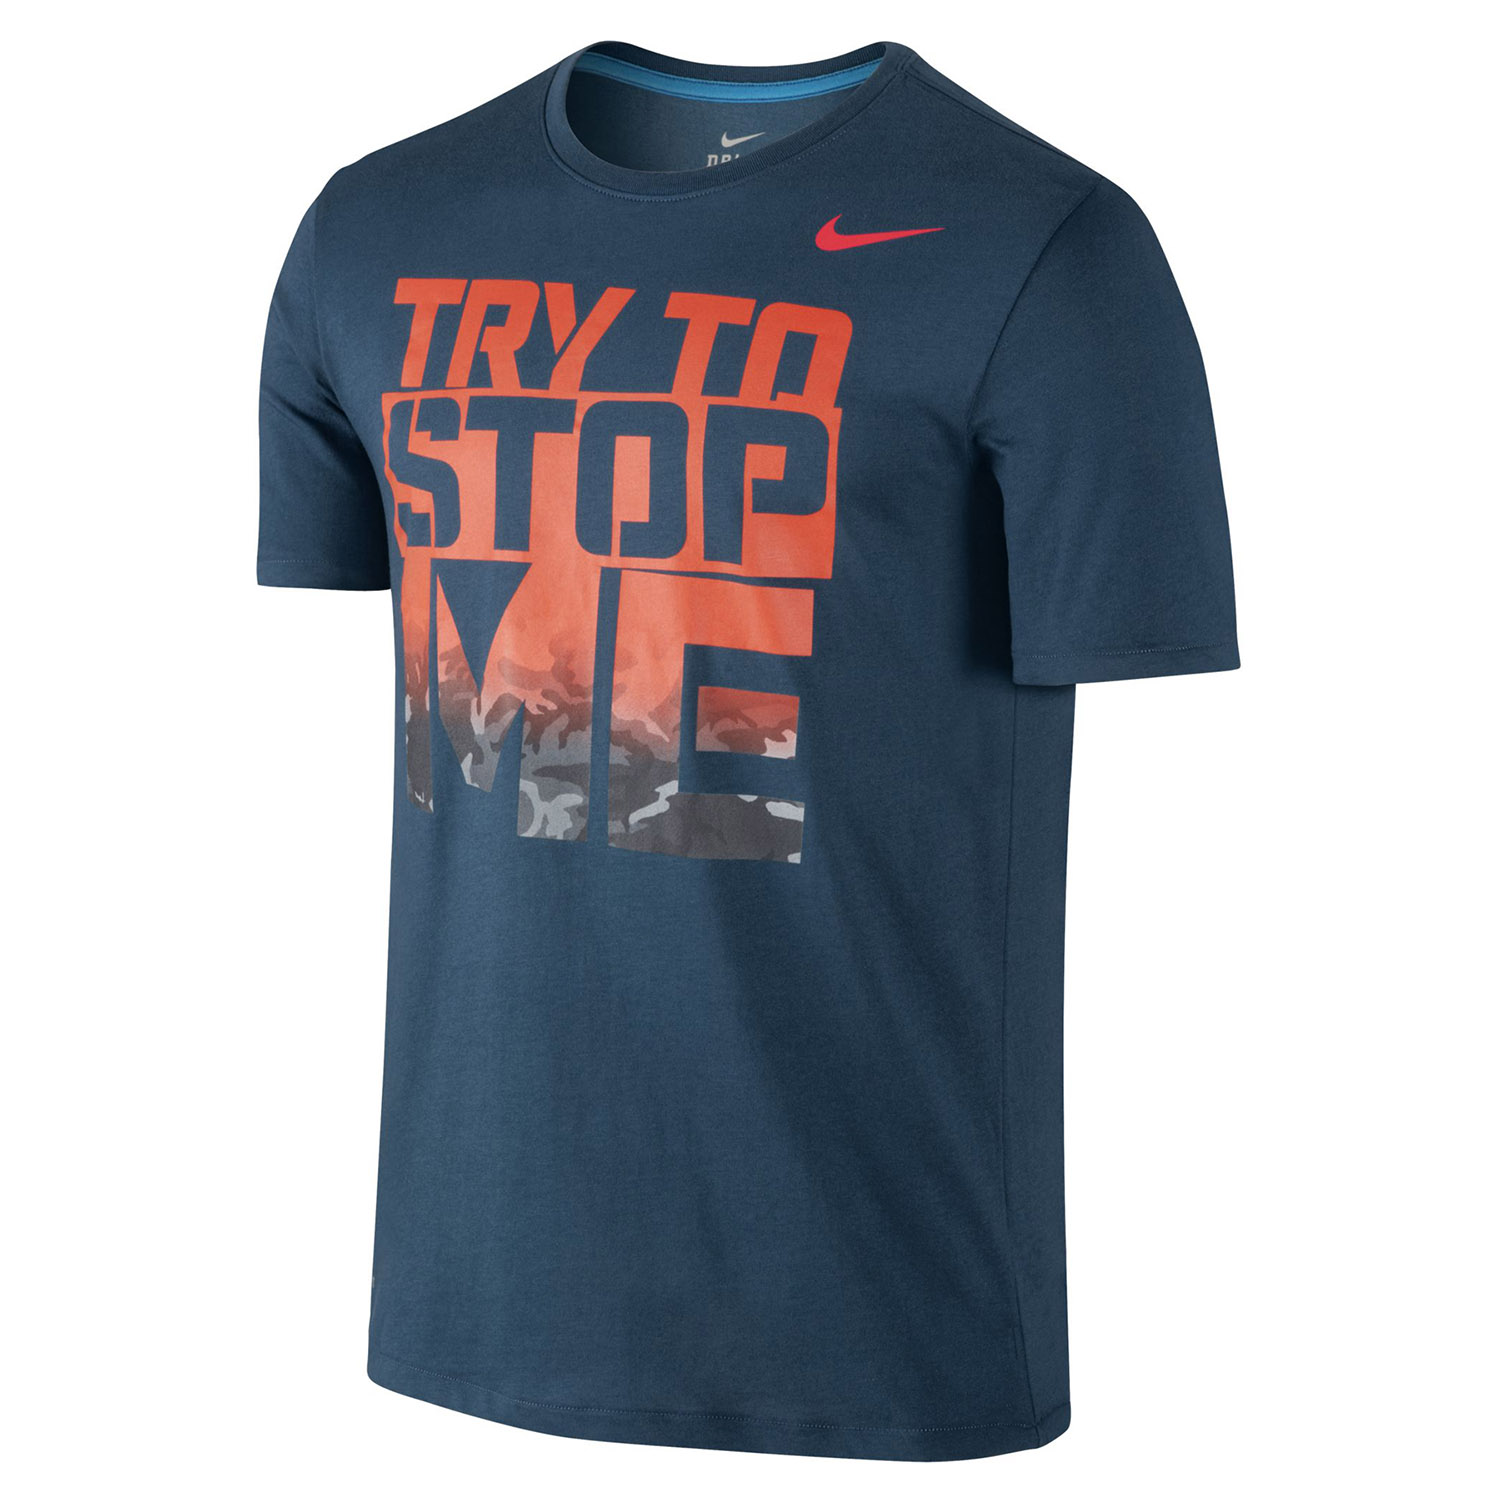 nike 39 try to stop me 39 t shirt. Black Bedroom Furniture Sets. Home Design Ideas